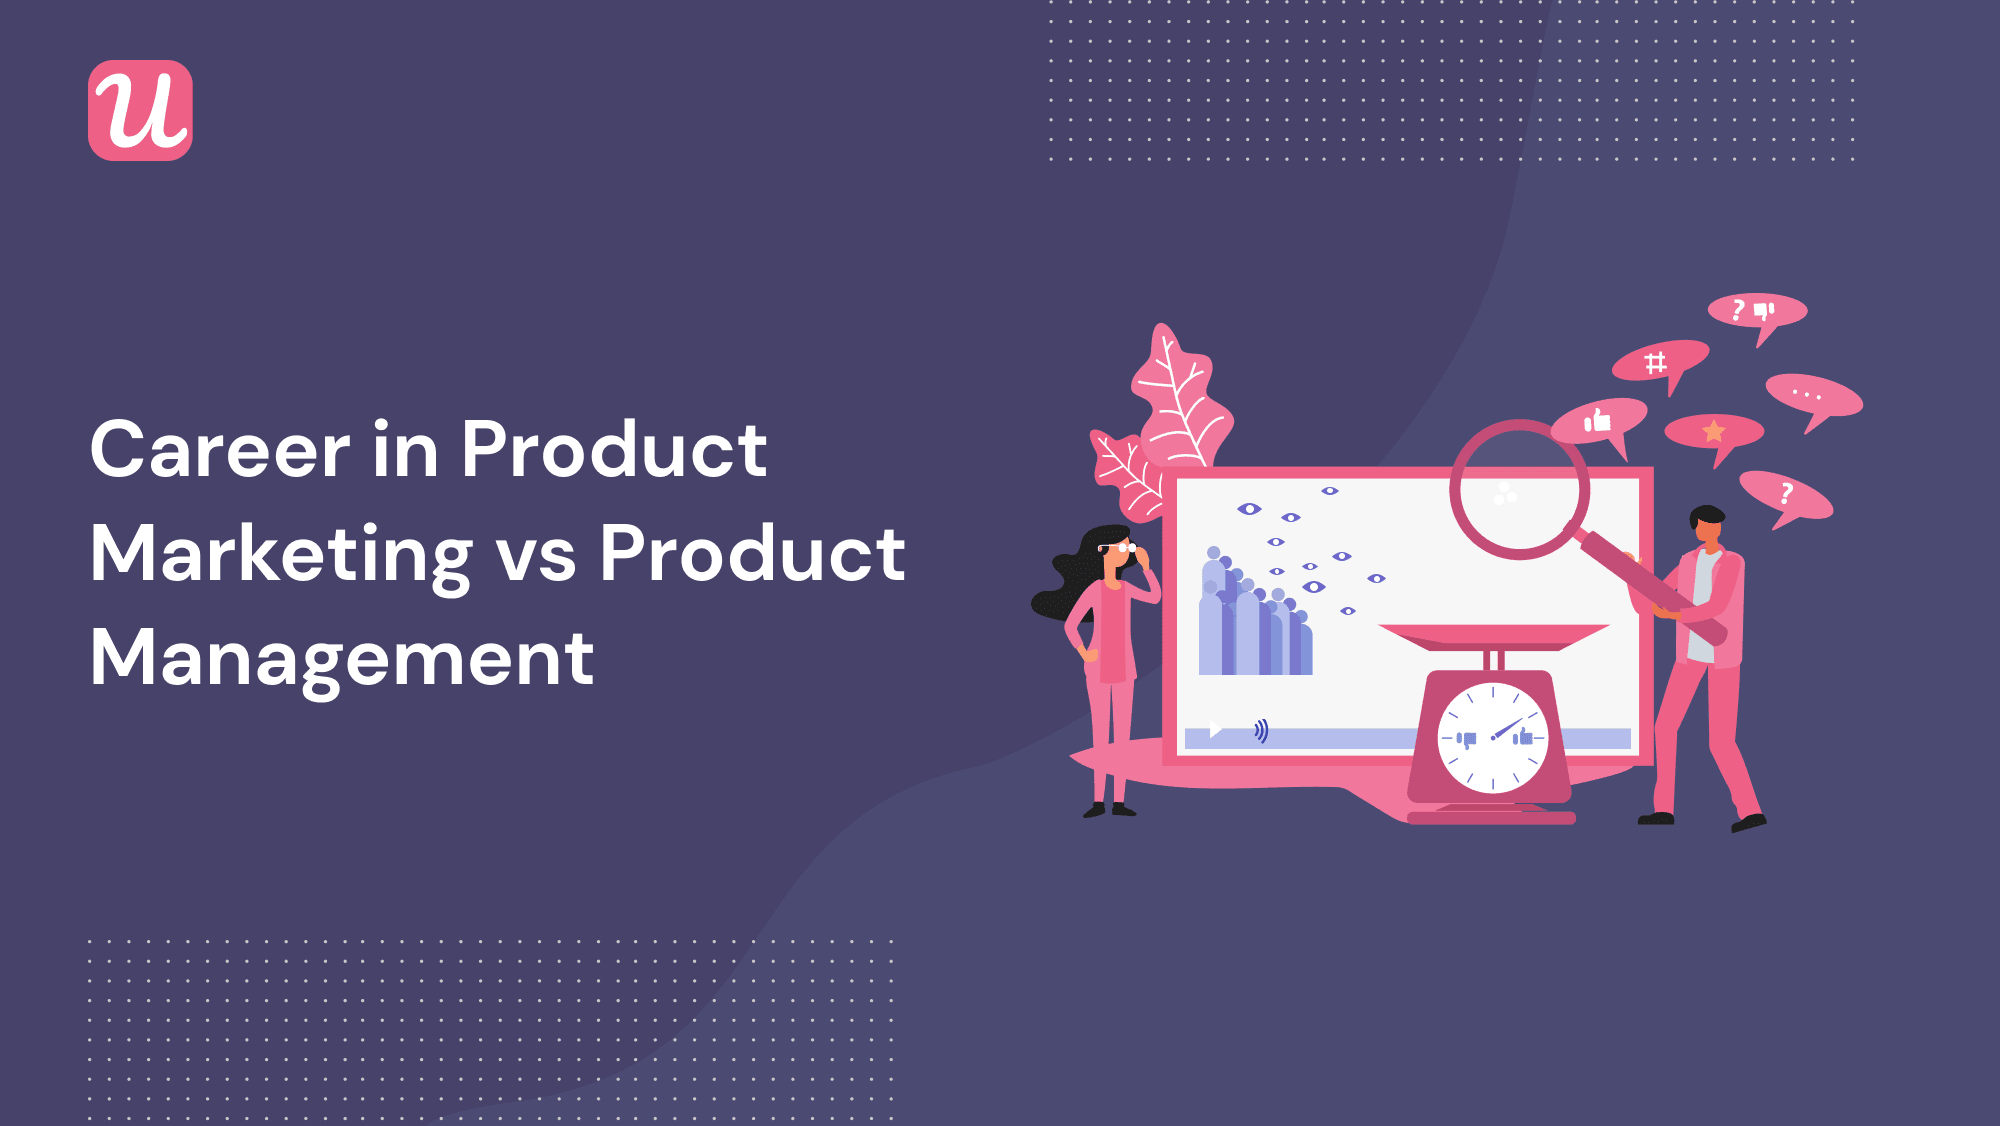 A Career in Product Marketing vs Product Management - What You Need to Know